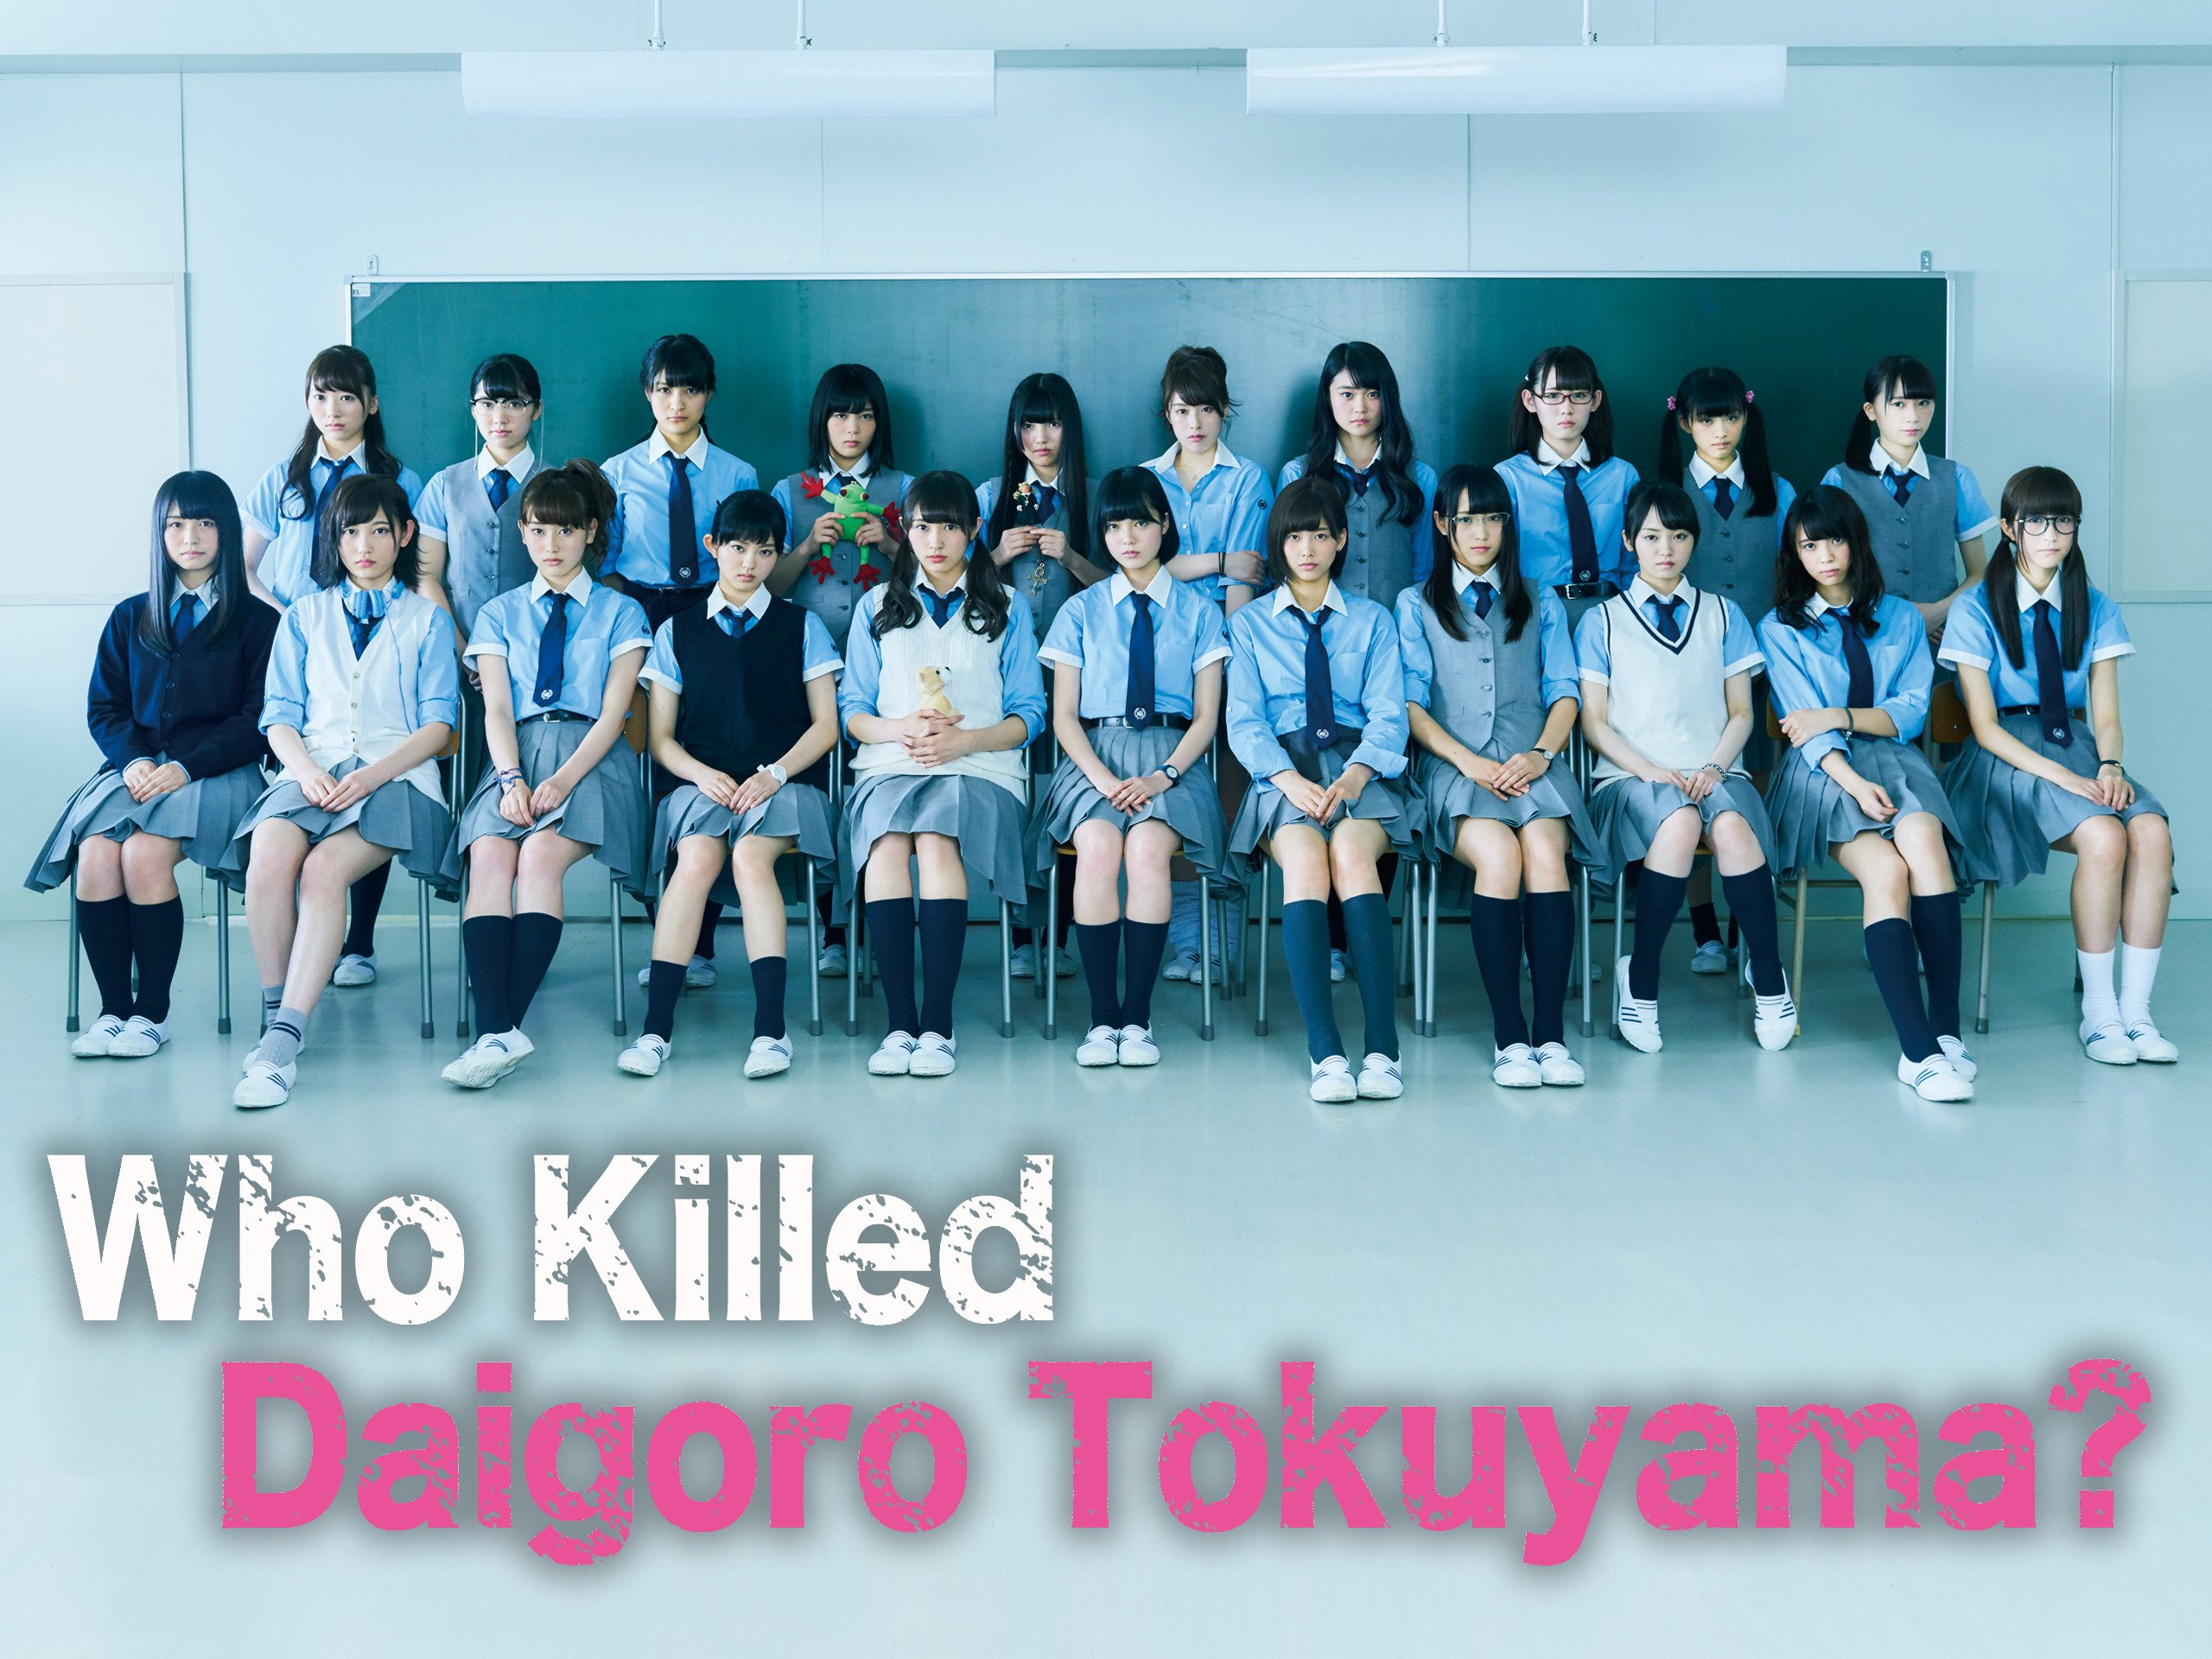 Amazon.com: WHO KILLED DAIGORO TOKUYAMA? - Season 1: Nijika ...